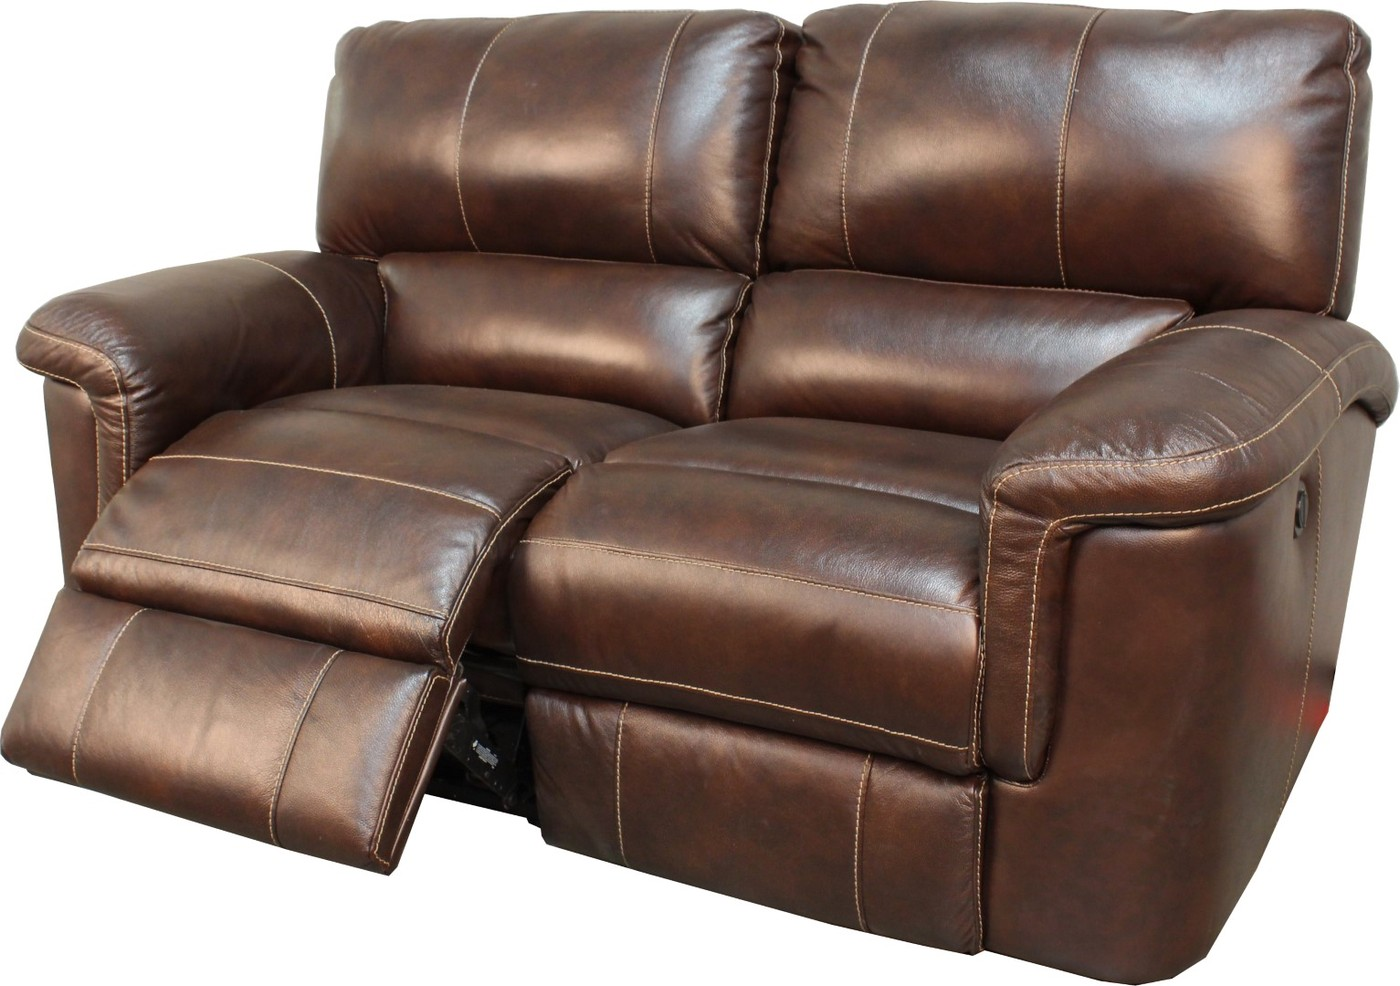 parker living hitchcock cigar brown leather reclining sofa set mhit 832p ci. Black Bedroom Furniture Sets. Home Design Ideas